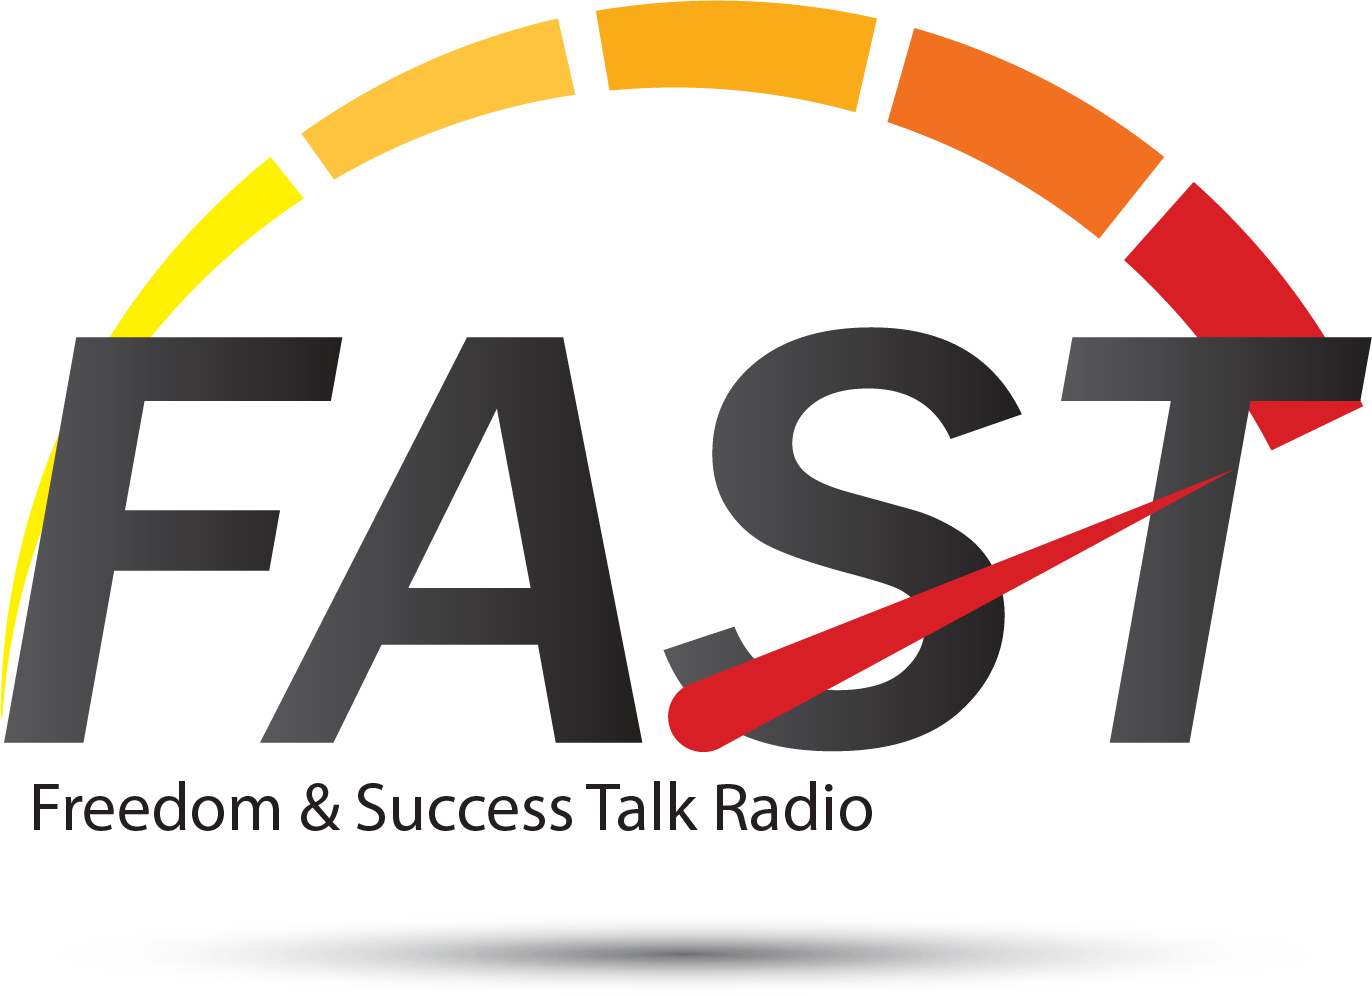 FAST Radio - FAST Radio Podcast is a show where we discuss the different definitions of freedom and success as learned by the different guests we have appear on our show. Our goal is to bring value in the way of content to change people's lives and give them a new perspective on living.